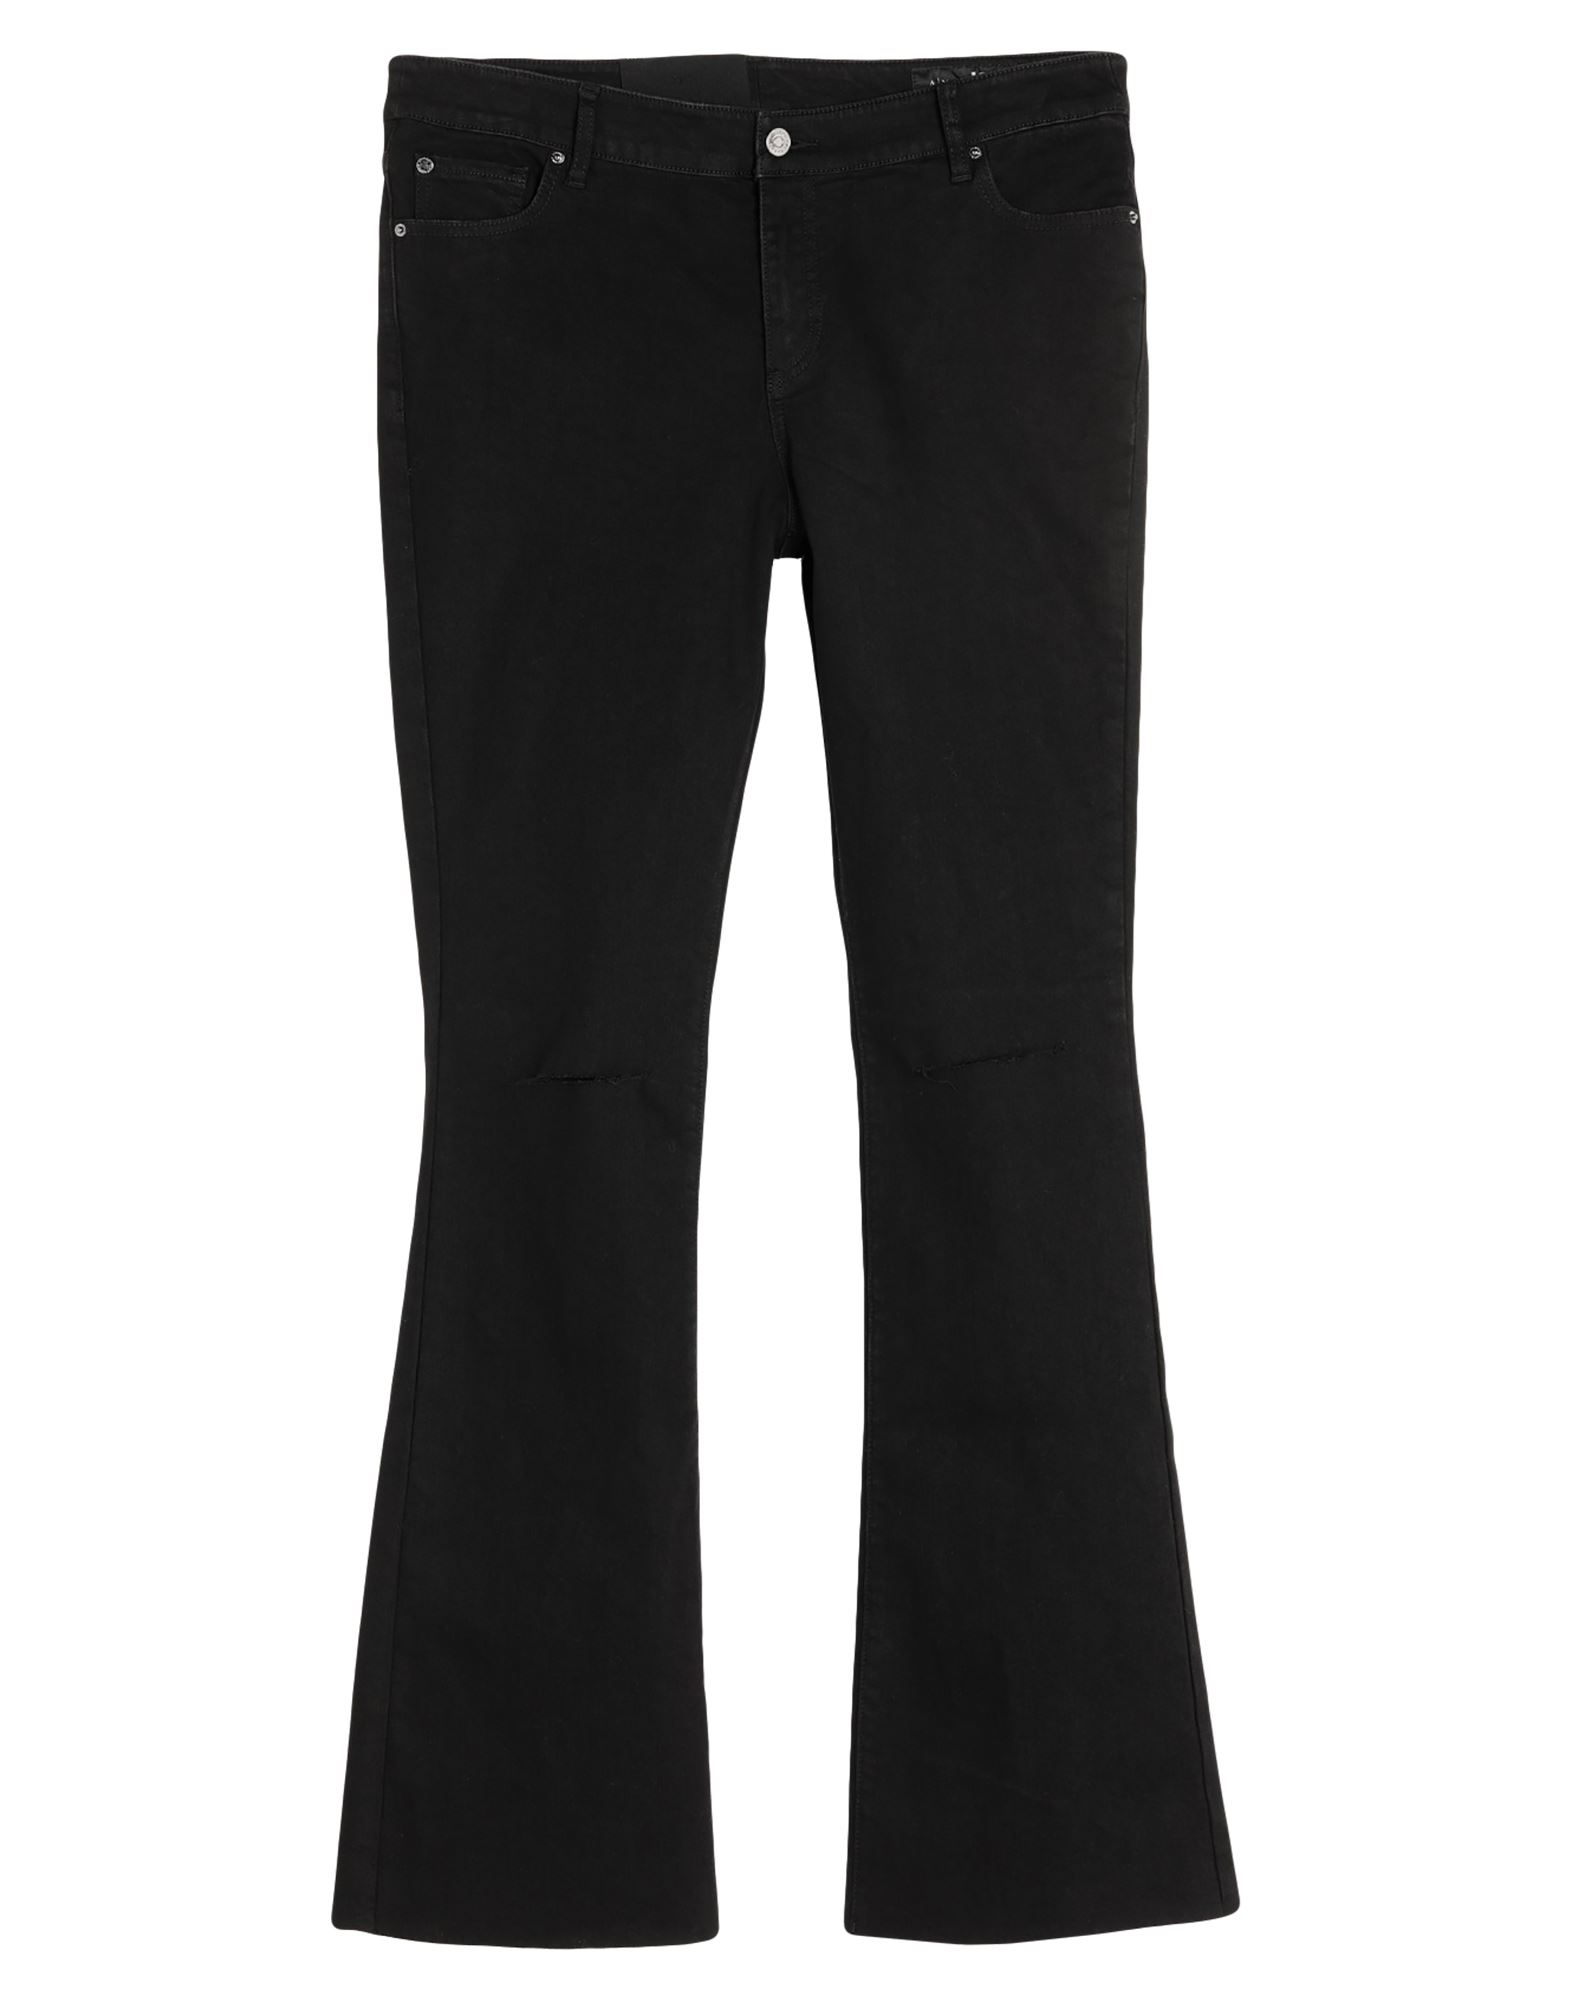 ARMANI EXCHANGE Denim pants - Item 42832947